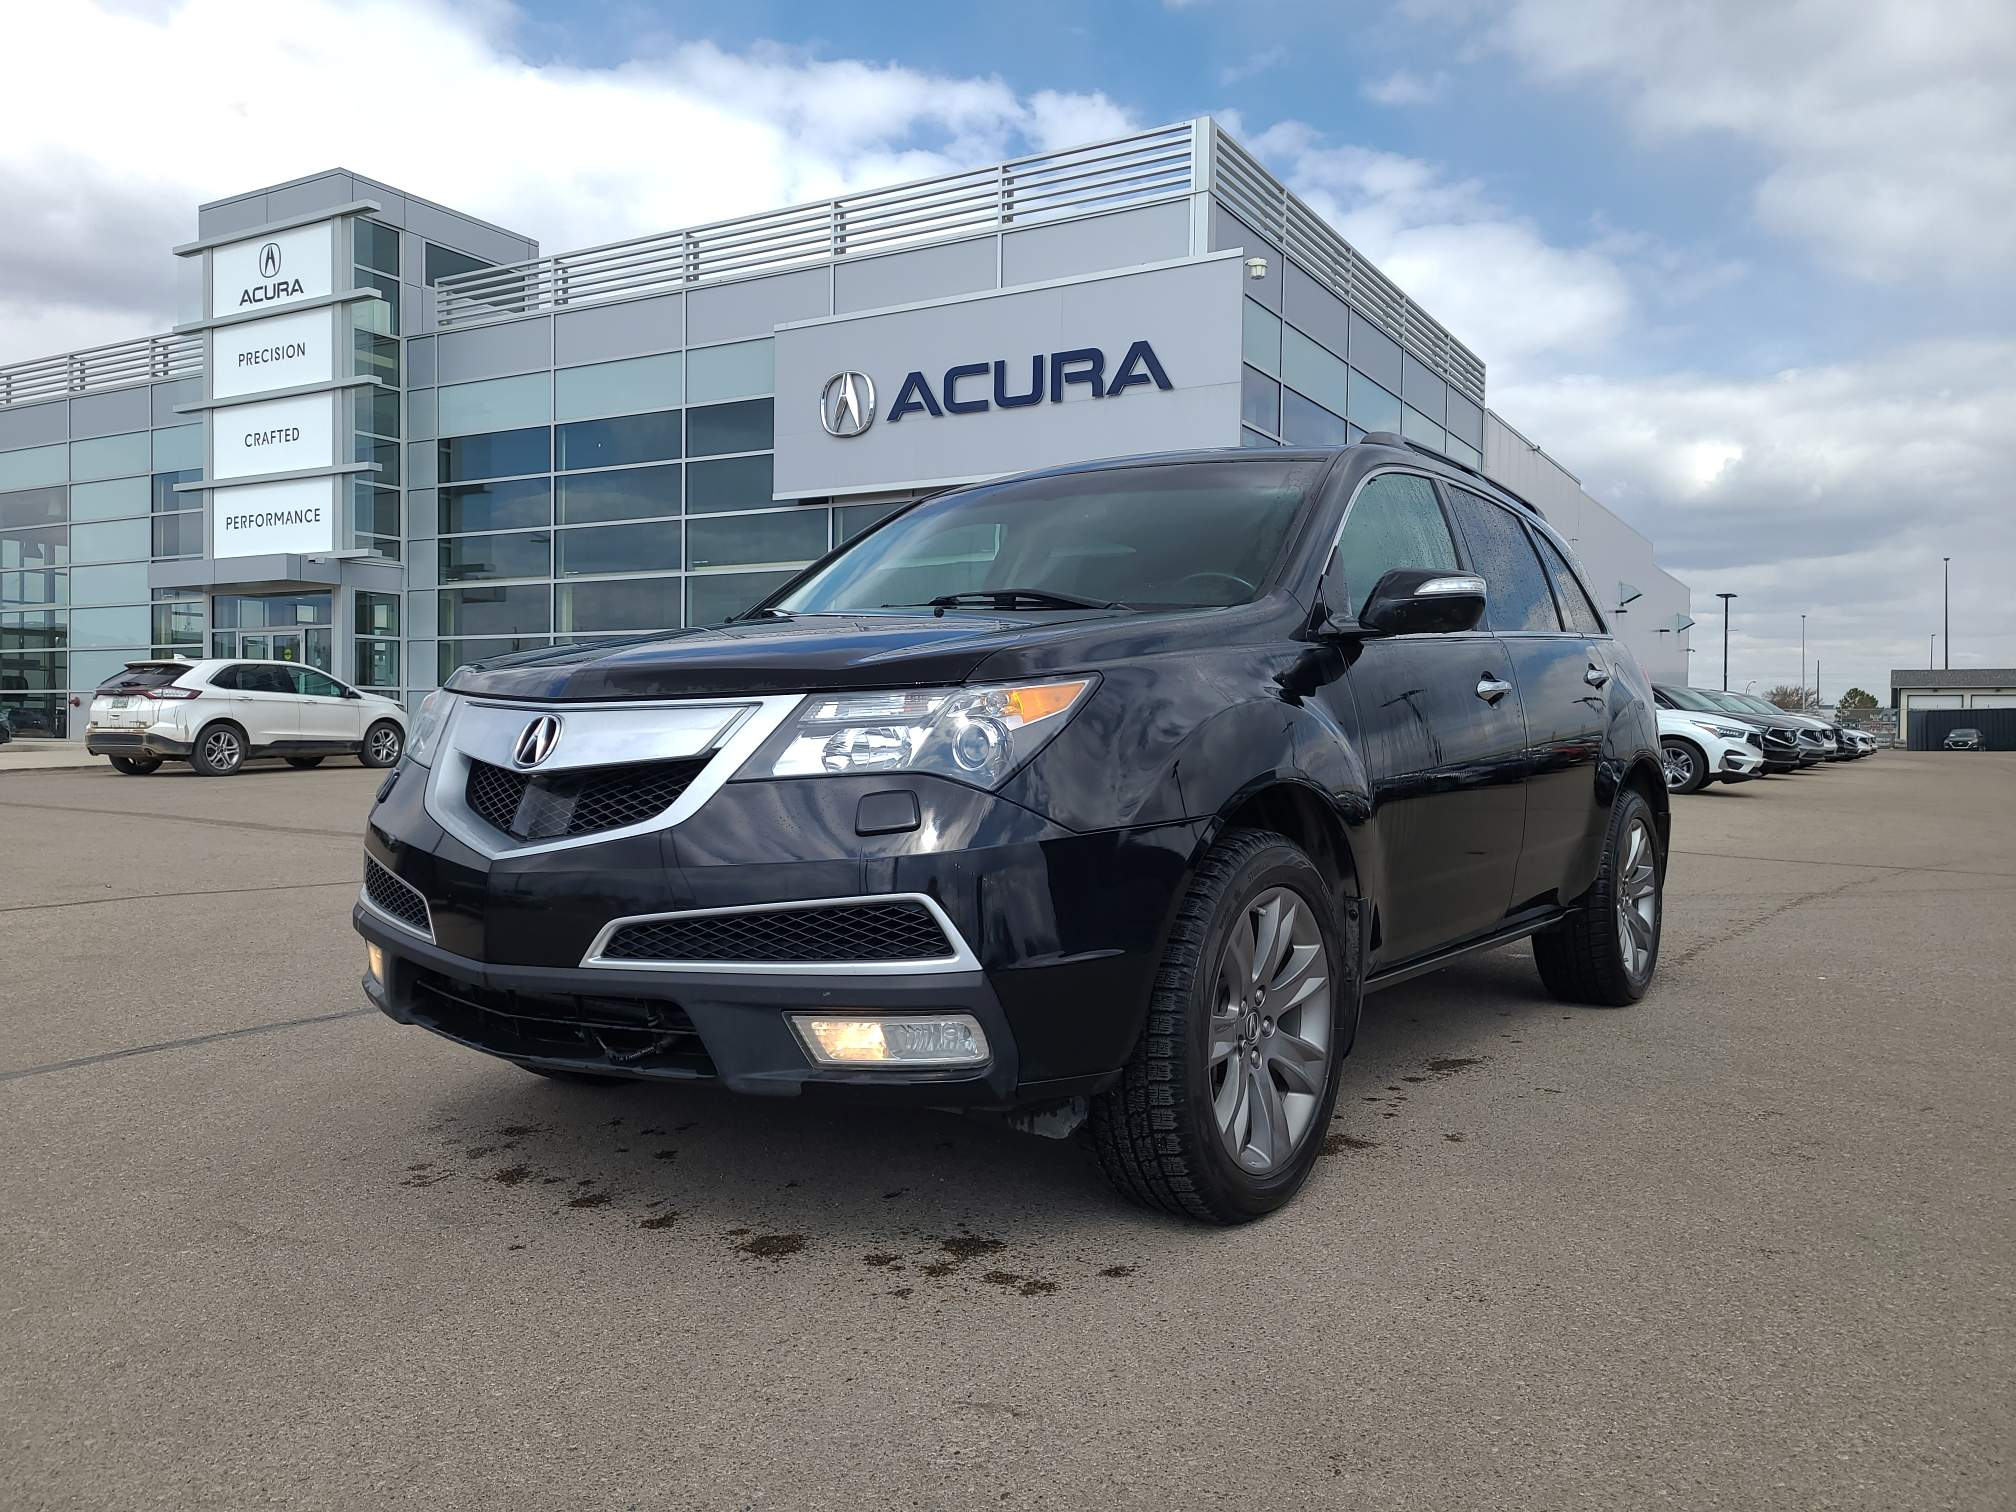 used 2013 Acura MDX car, priced at $19,957